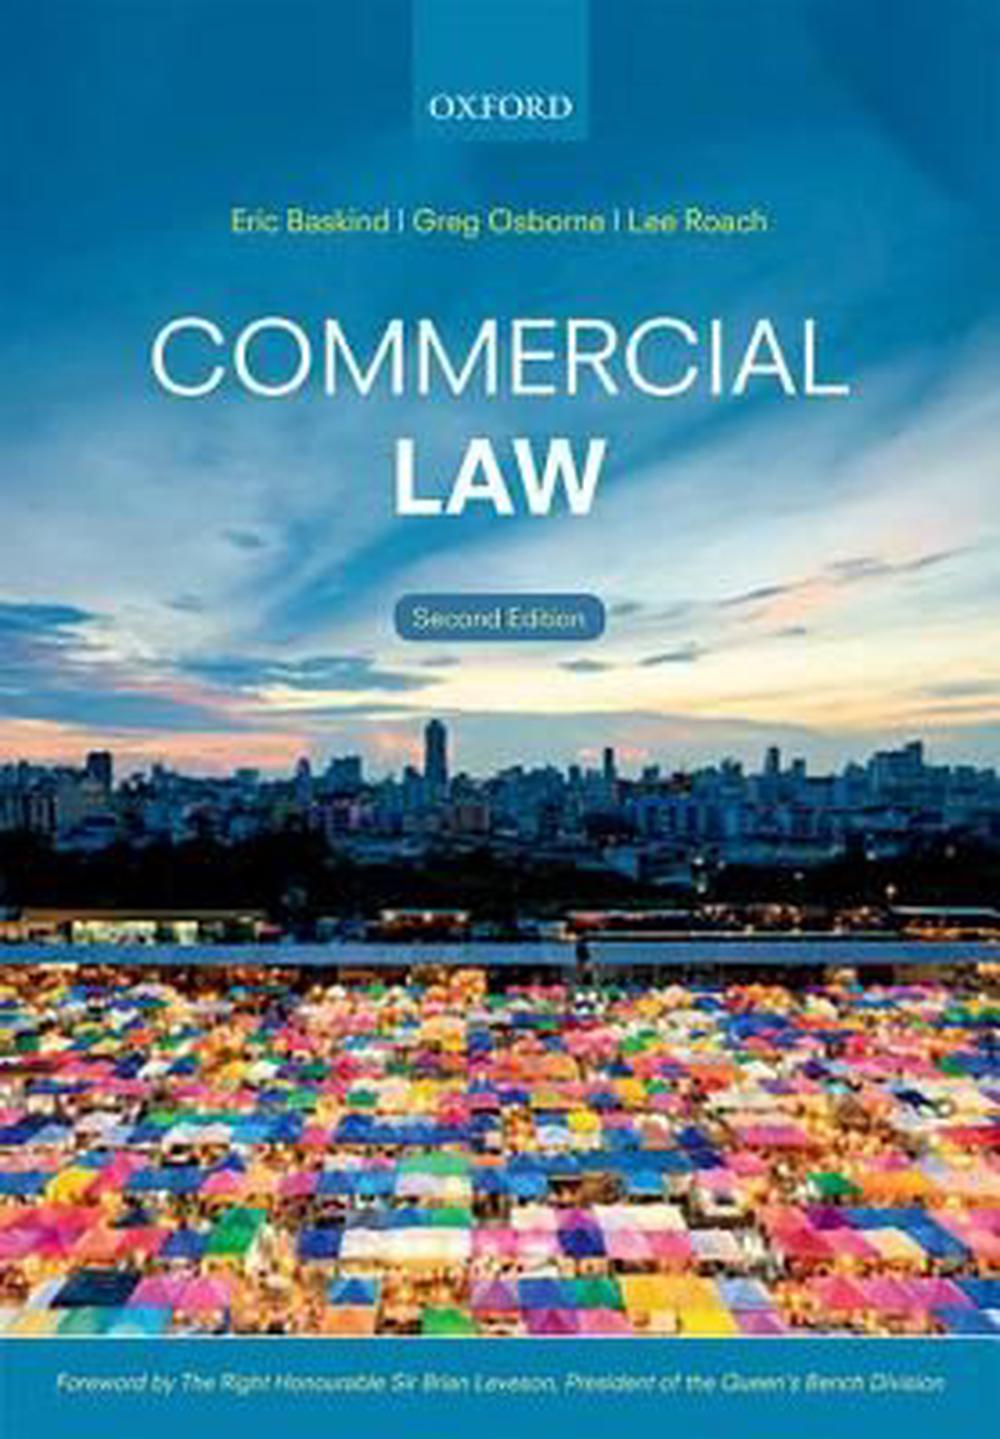 commercial law by eric baskind  paperback  9780198729358